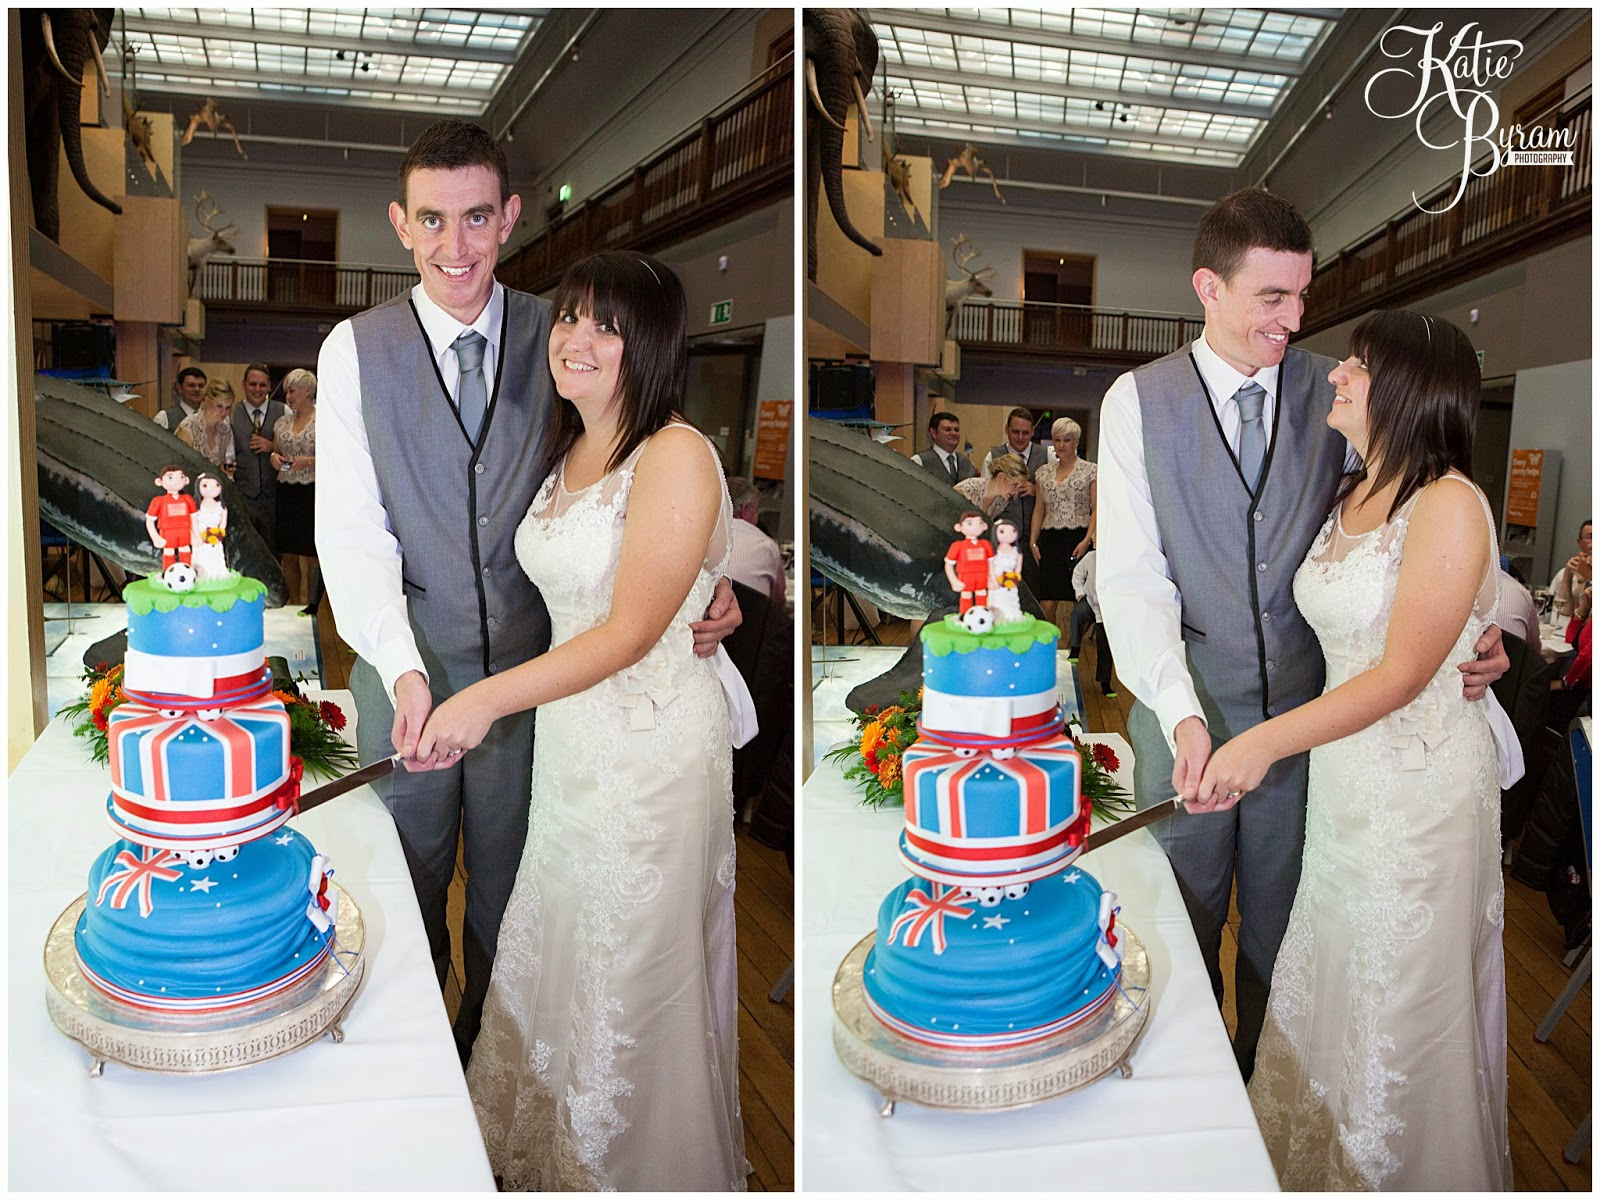 football wedding cake, novelty wedding cake, football cake, vermont hotel wedding, hancock museum wedding, great north museum wedding, quirky wedding, katie byram photography, city centre wedding newcastle upon tyne, wedding venues newcastle, t-rex wedding, museum wedding,